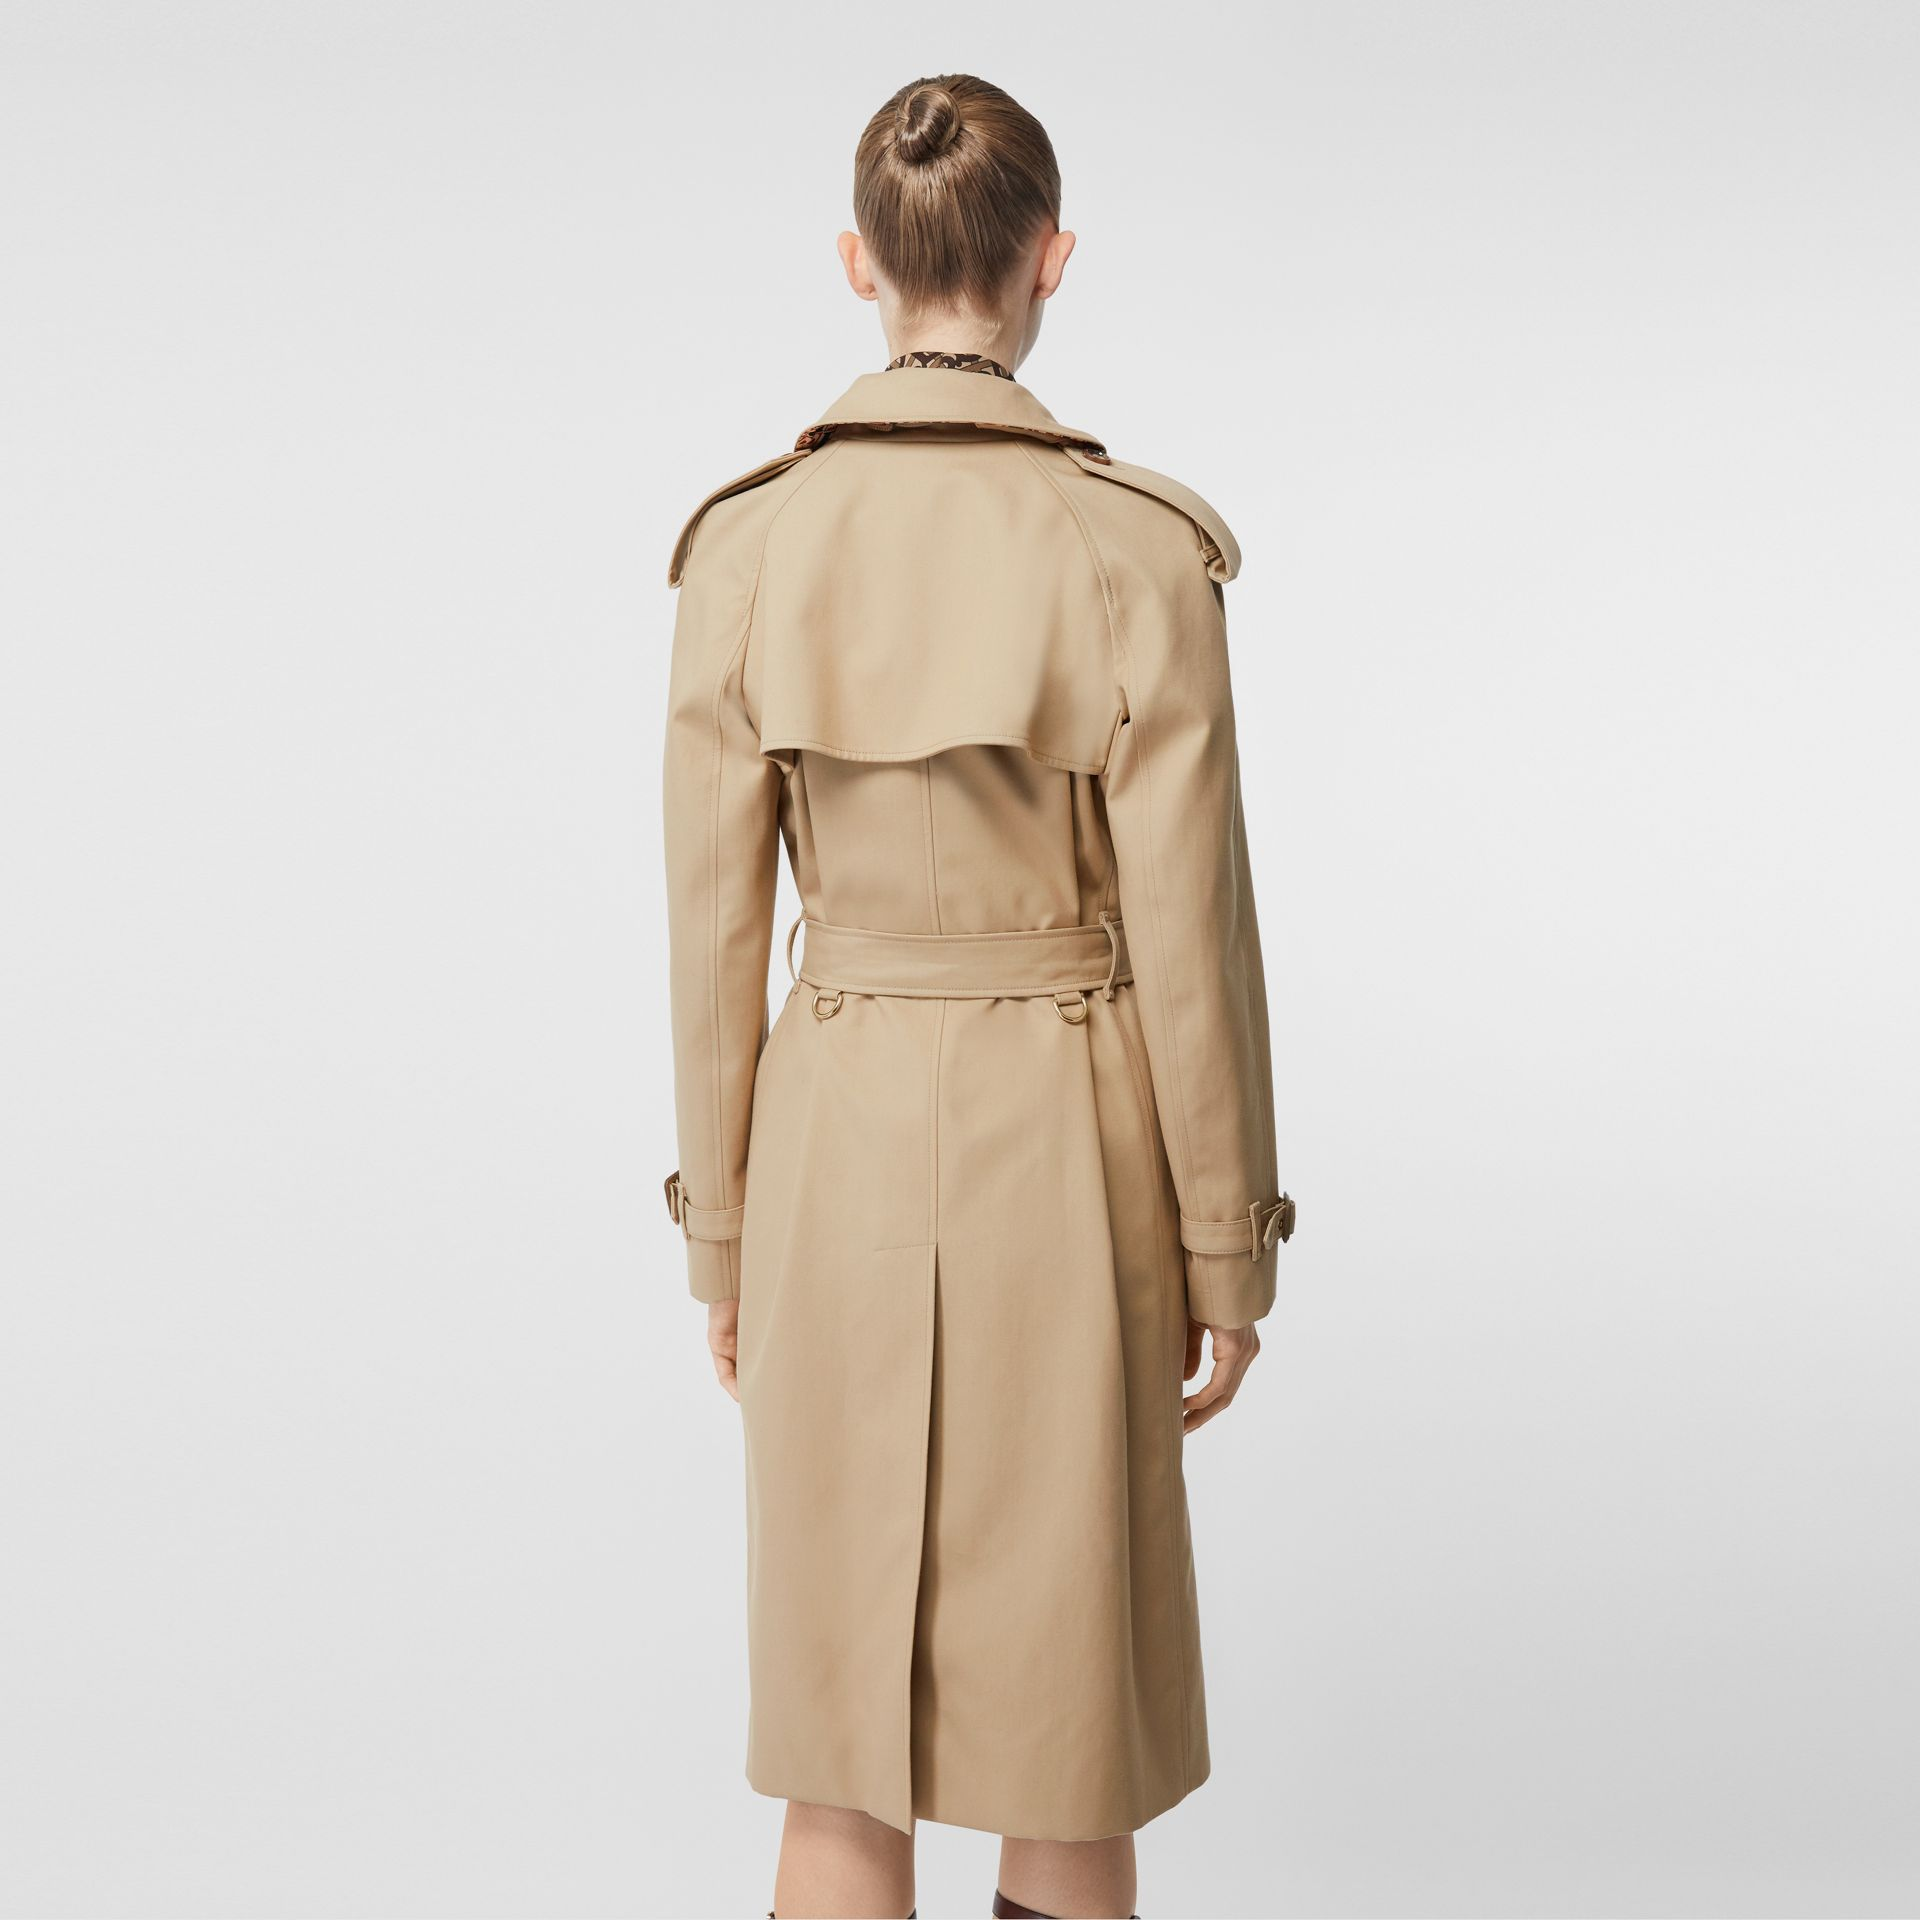 Archive Print-lined Cotton Gabardine Trench Coat in Honey - Women | Burberry - gallery image 2